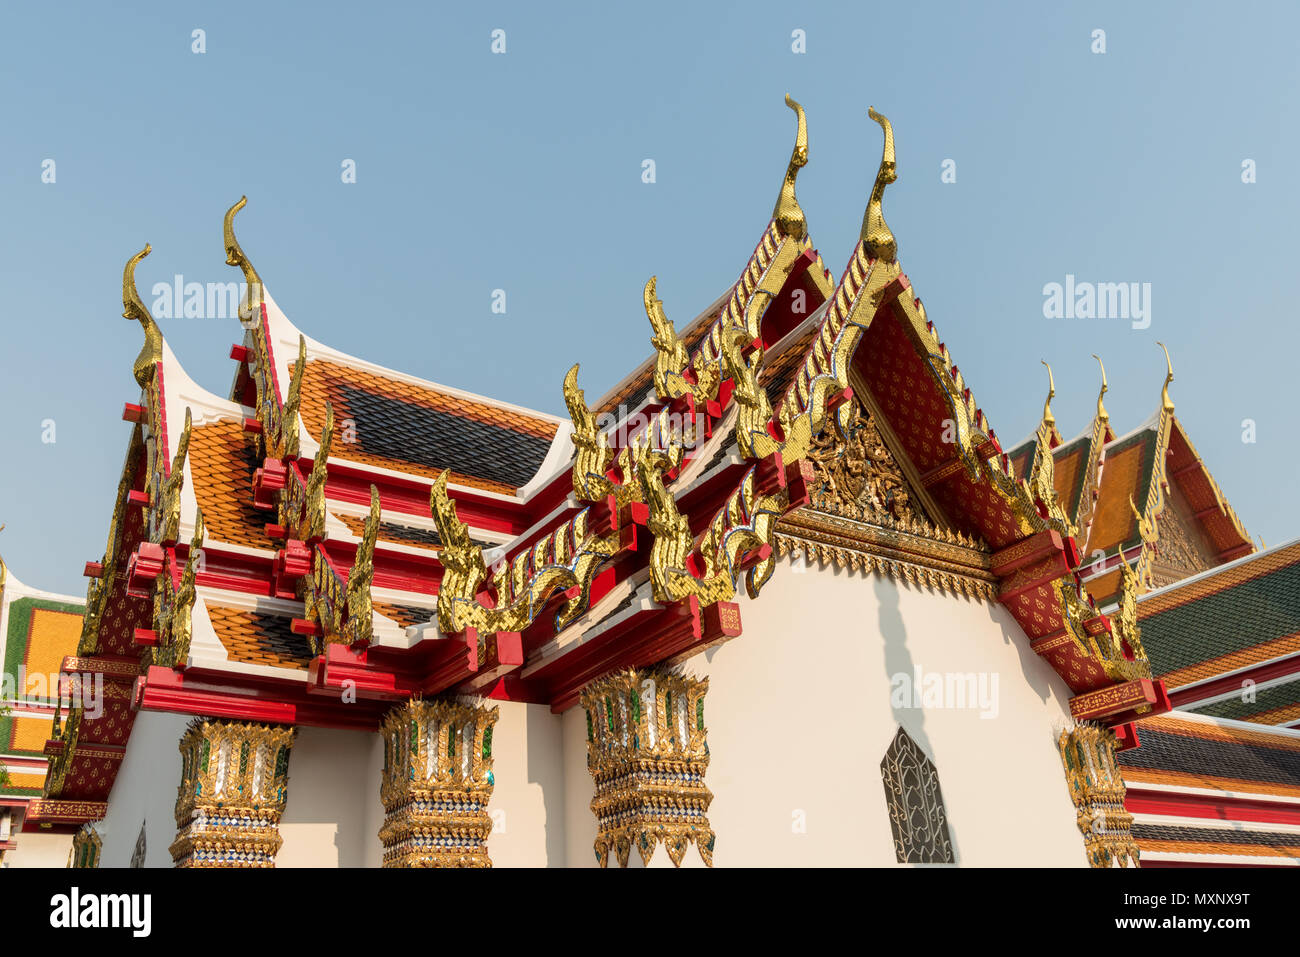 Ornate decorations  on the tops of the pagodas or chedis in the Wat Pho ,the Temple of the Reclining Buddha, or Wat Phra Chetuphon, Bangkok, Thailand - Stock Image